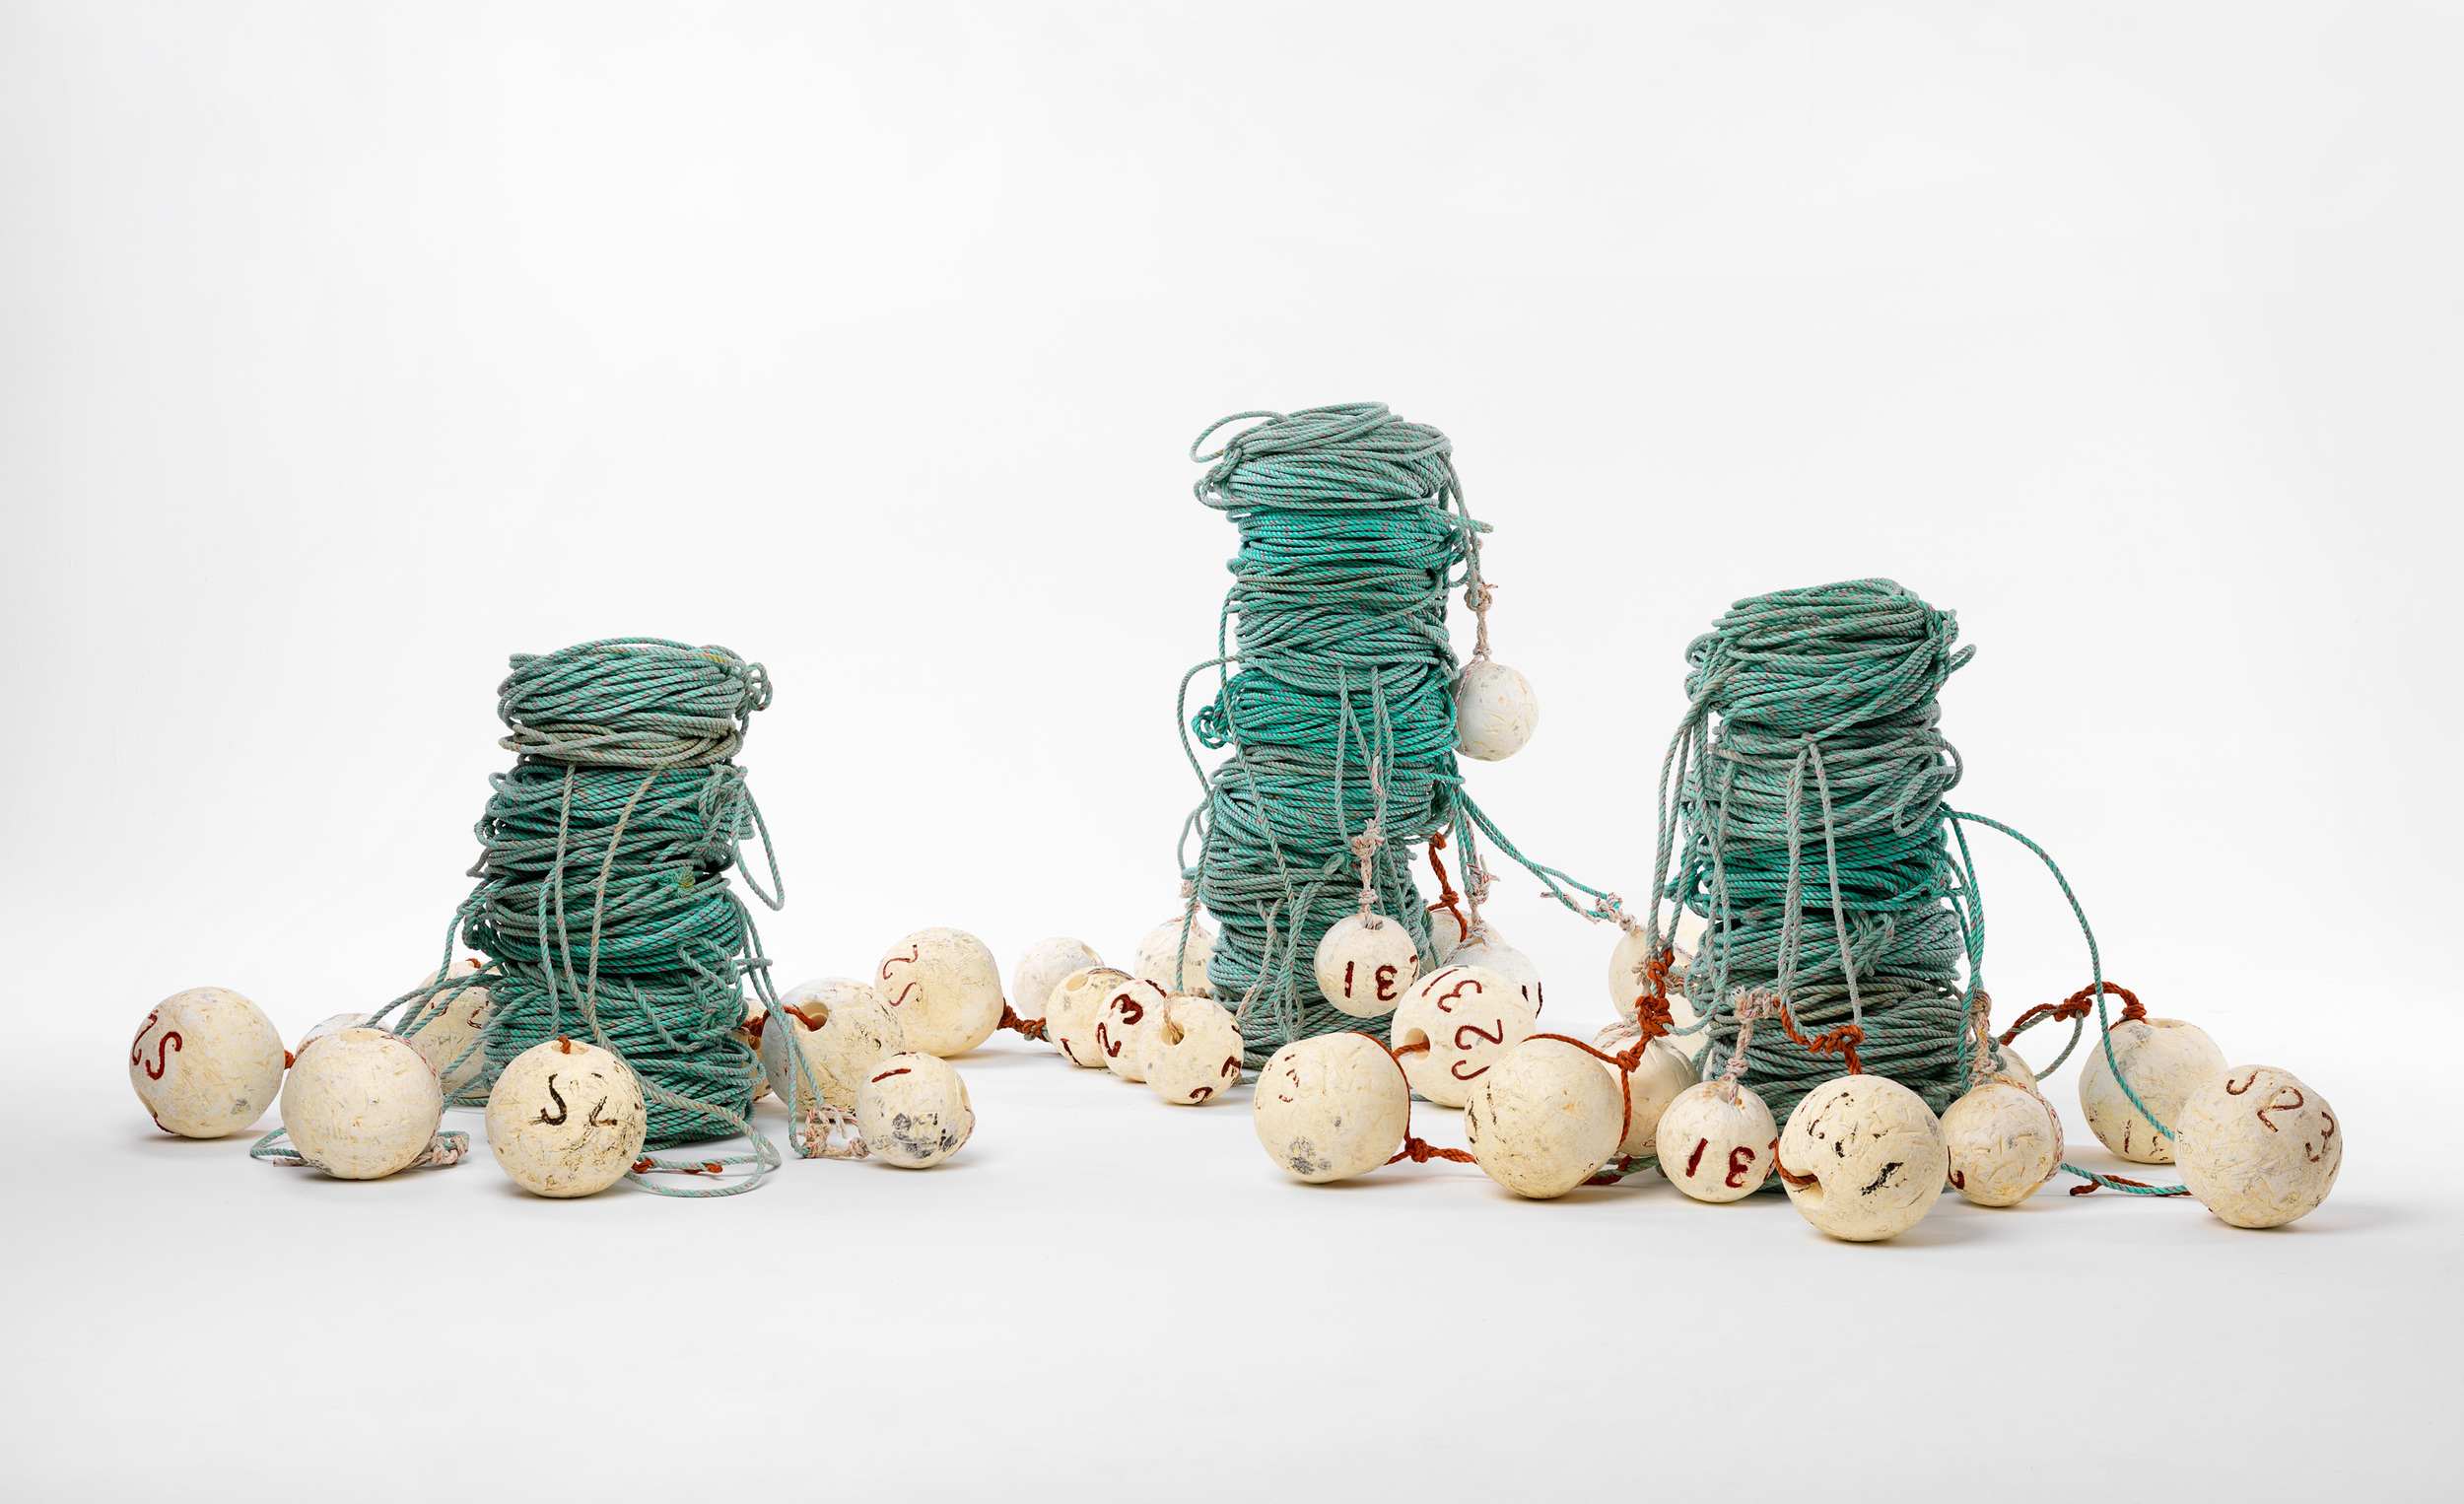 Ode to the fisherman   2016  Discarded lobster ropes & floats  120 x 300 x 250cm  photographer Grant Hancock